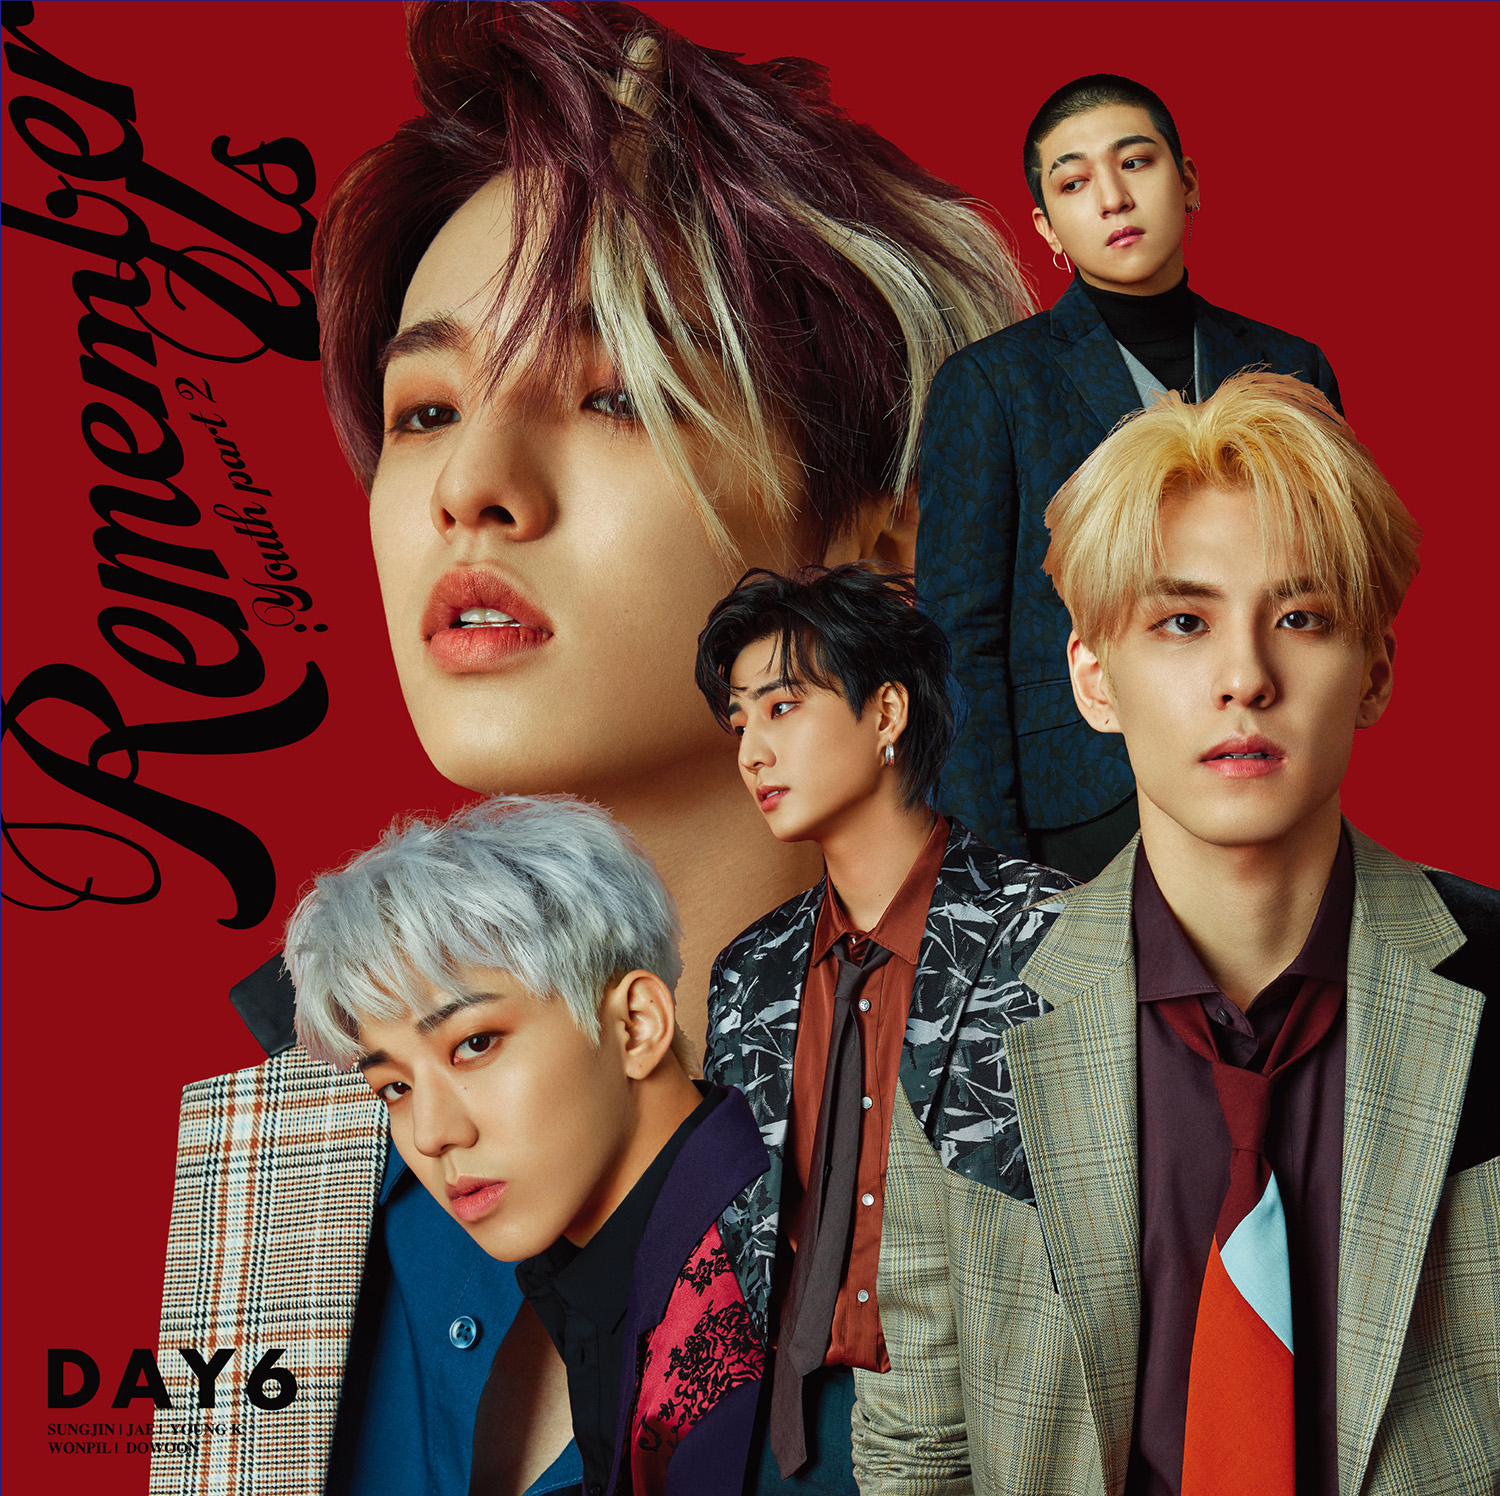 DAY6-Remember Us:Youth Part 2 獨家精華盤